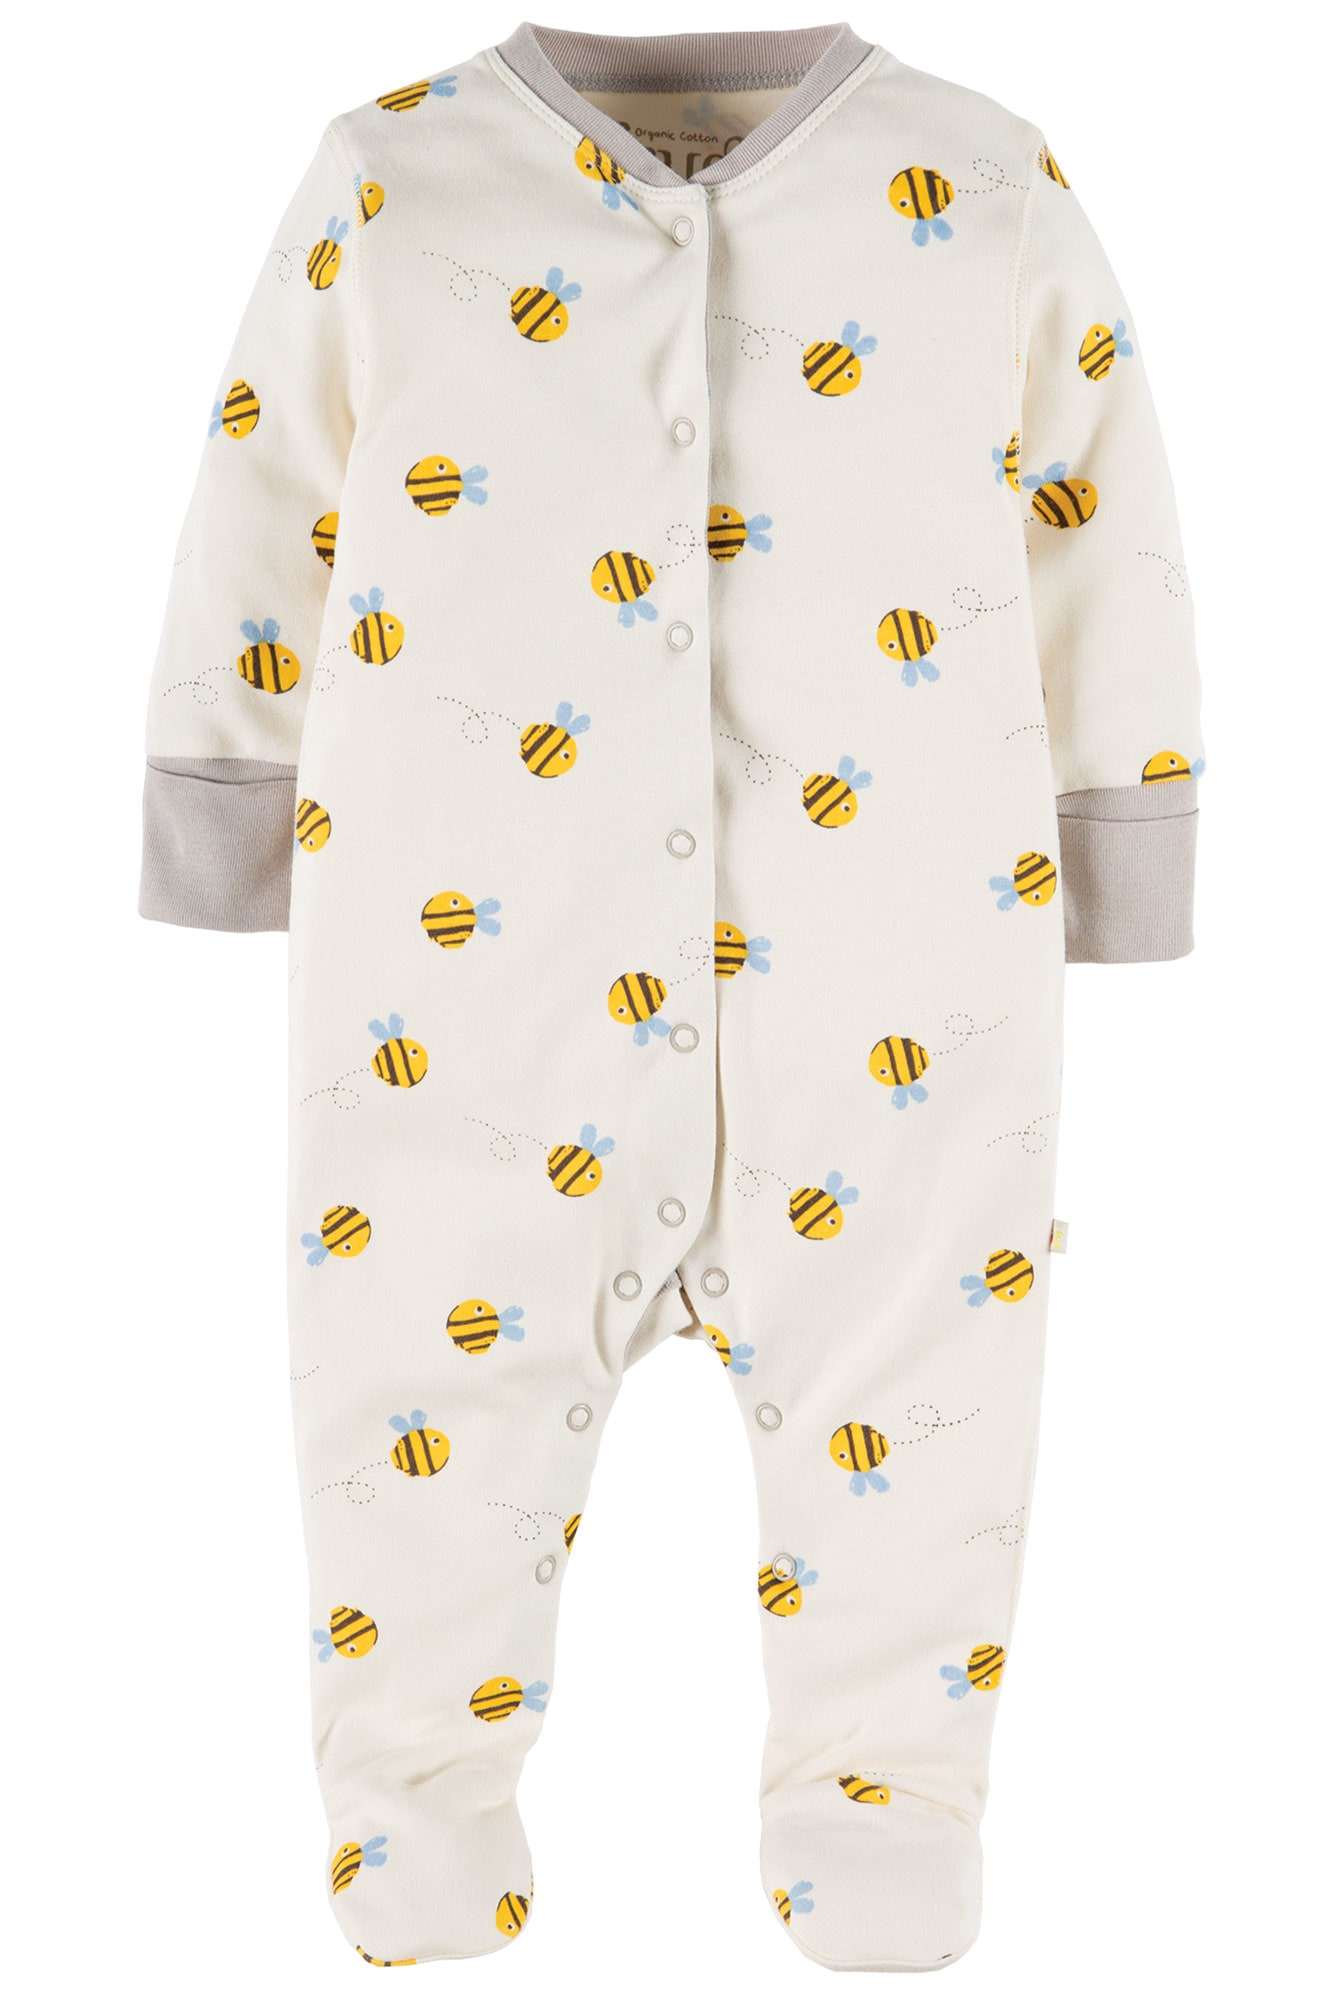 Stockists of Buzzy Bee Babygrow